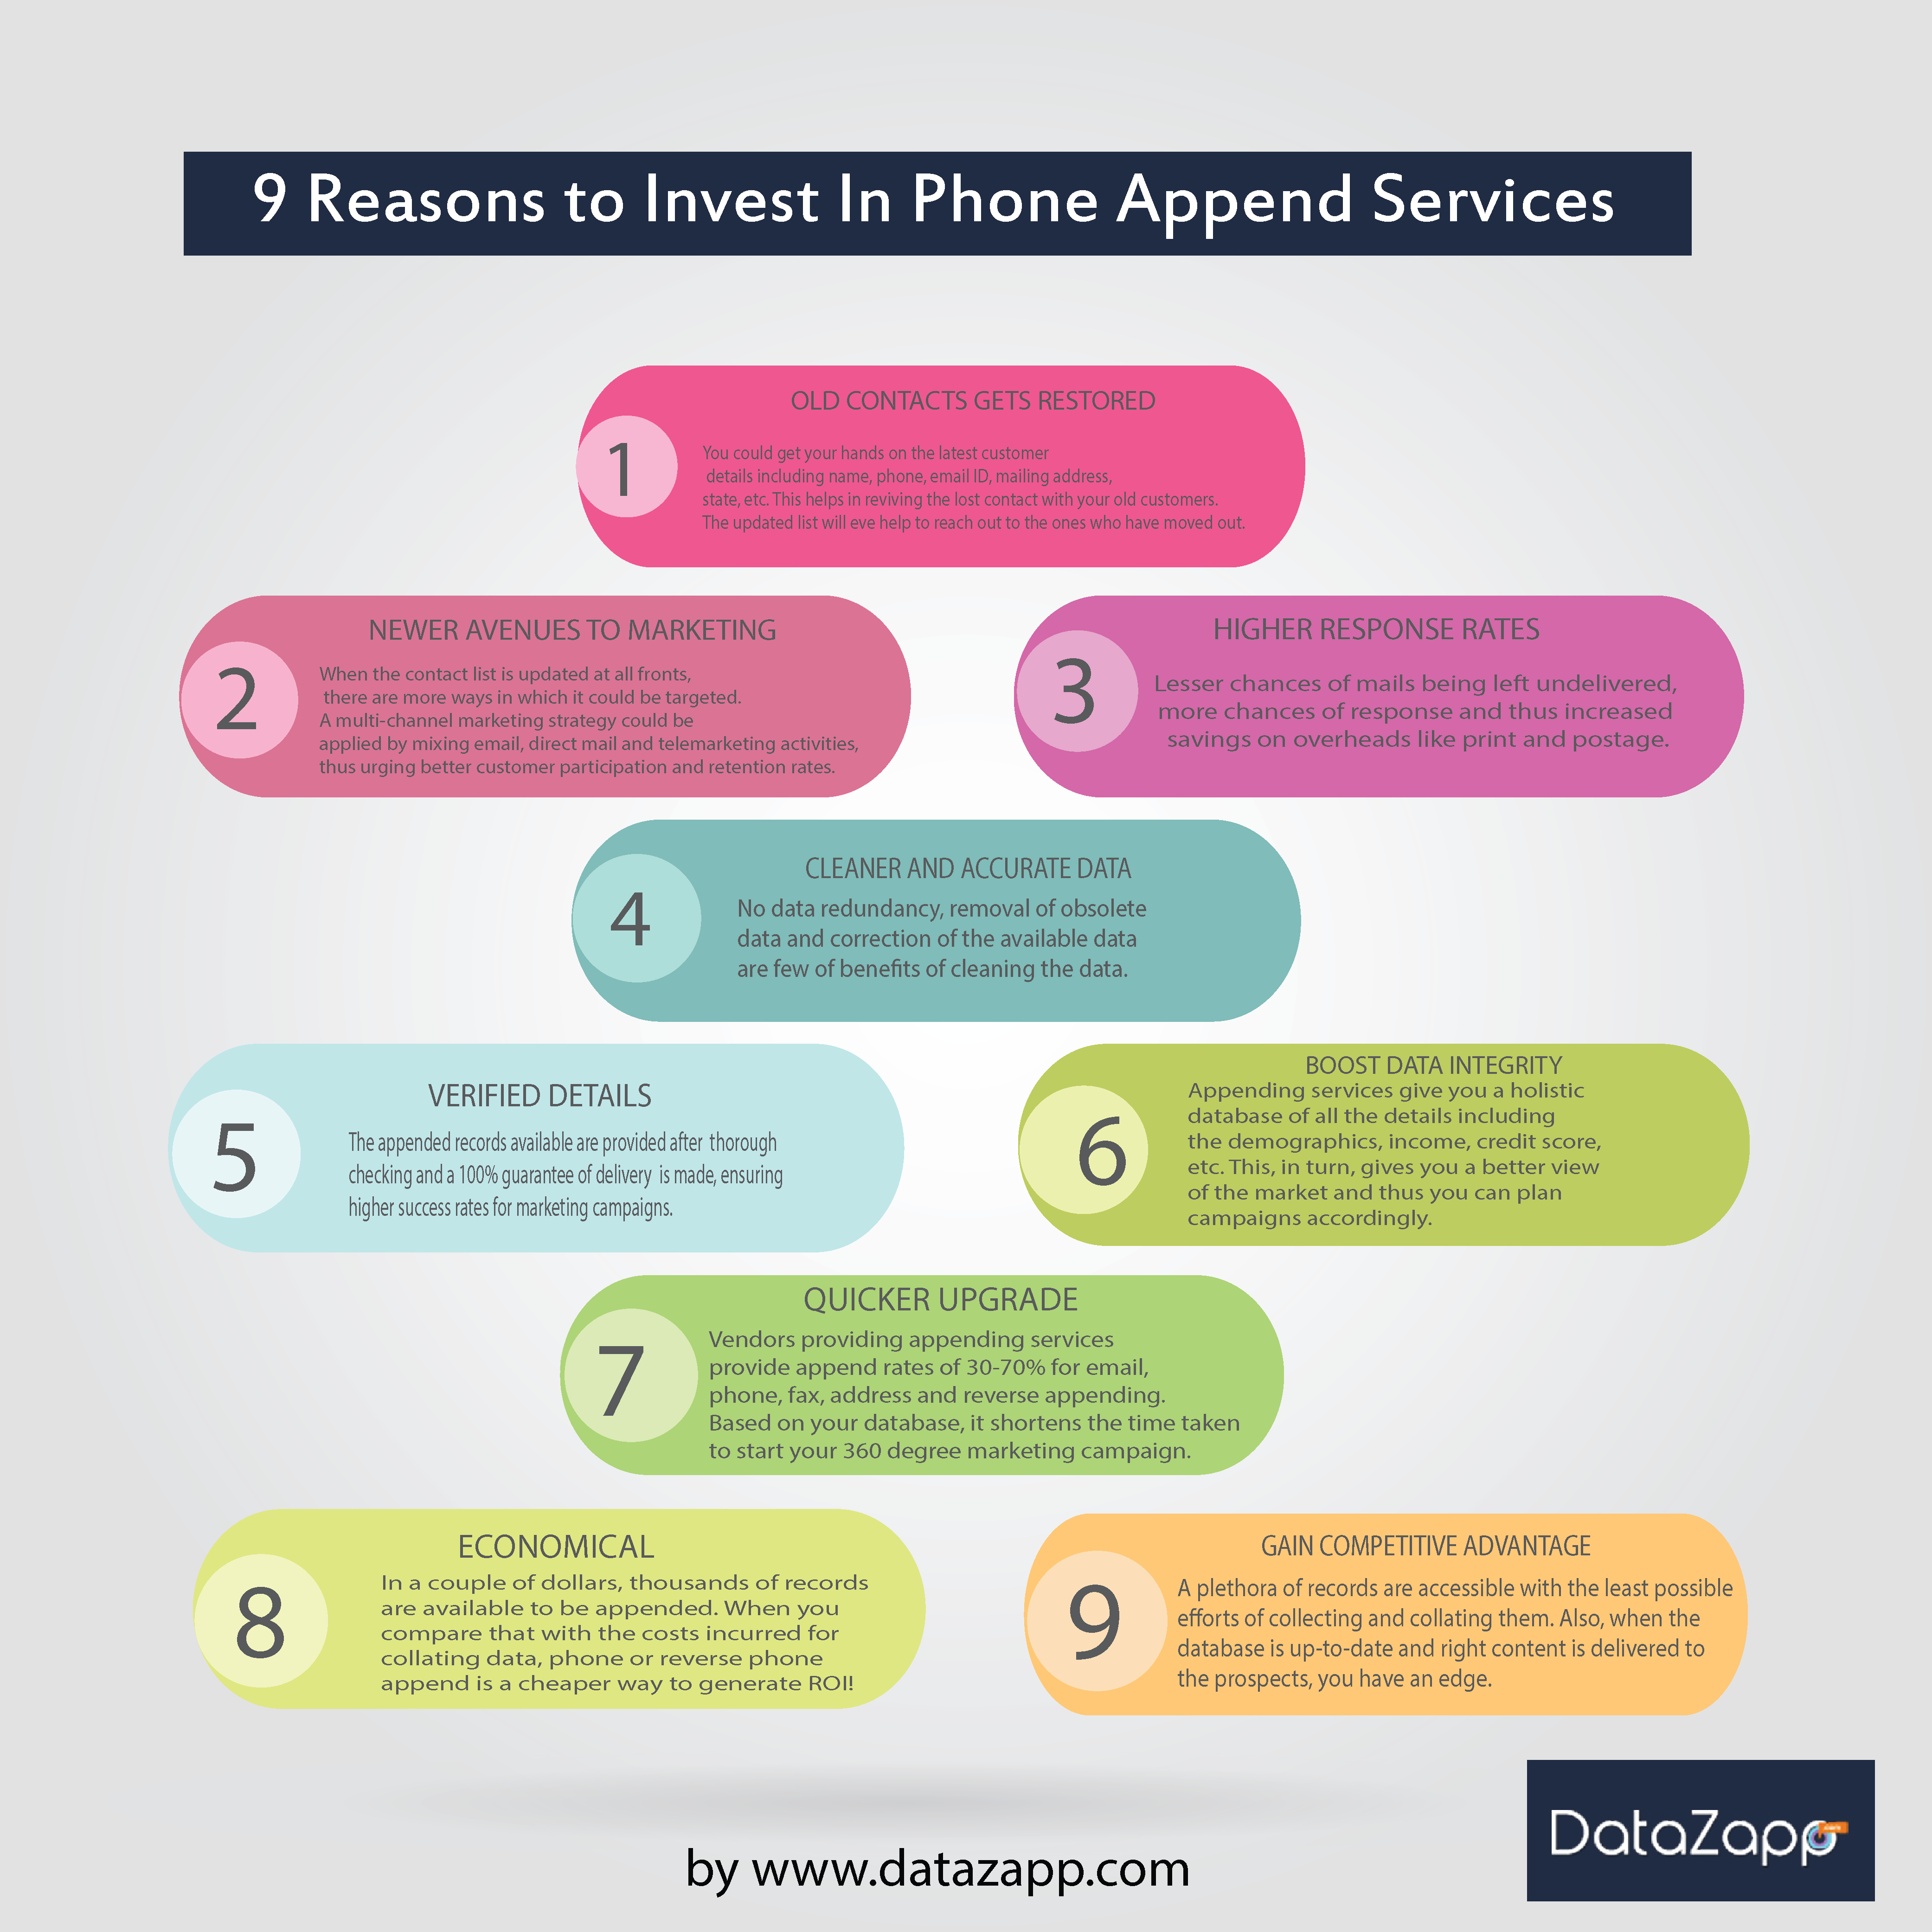 9-Reasons-to-Invest-in-Phone-Append-Services.png